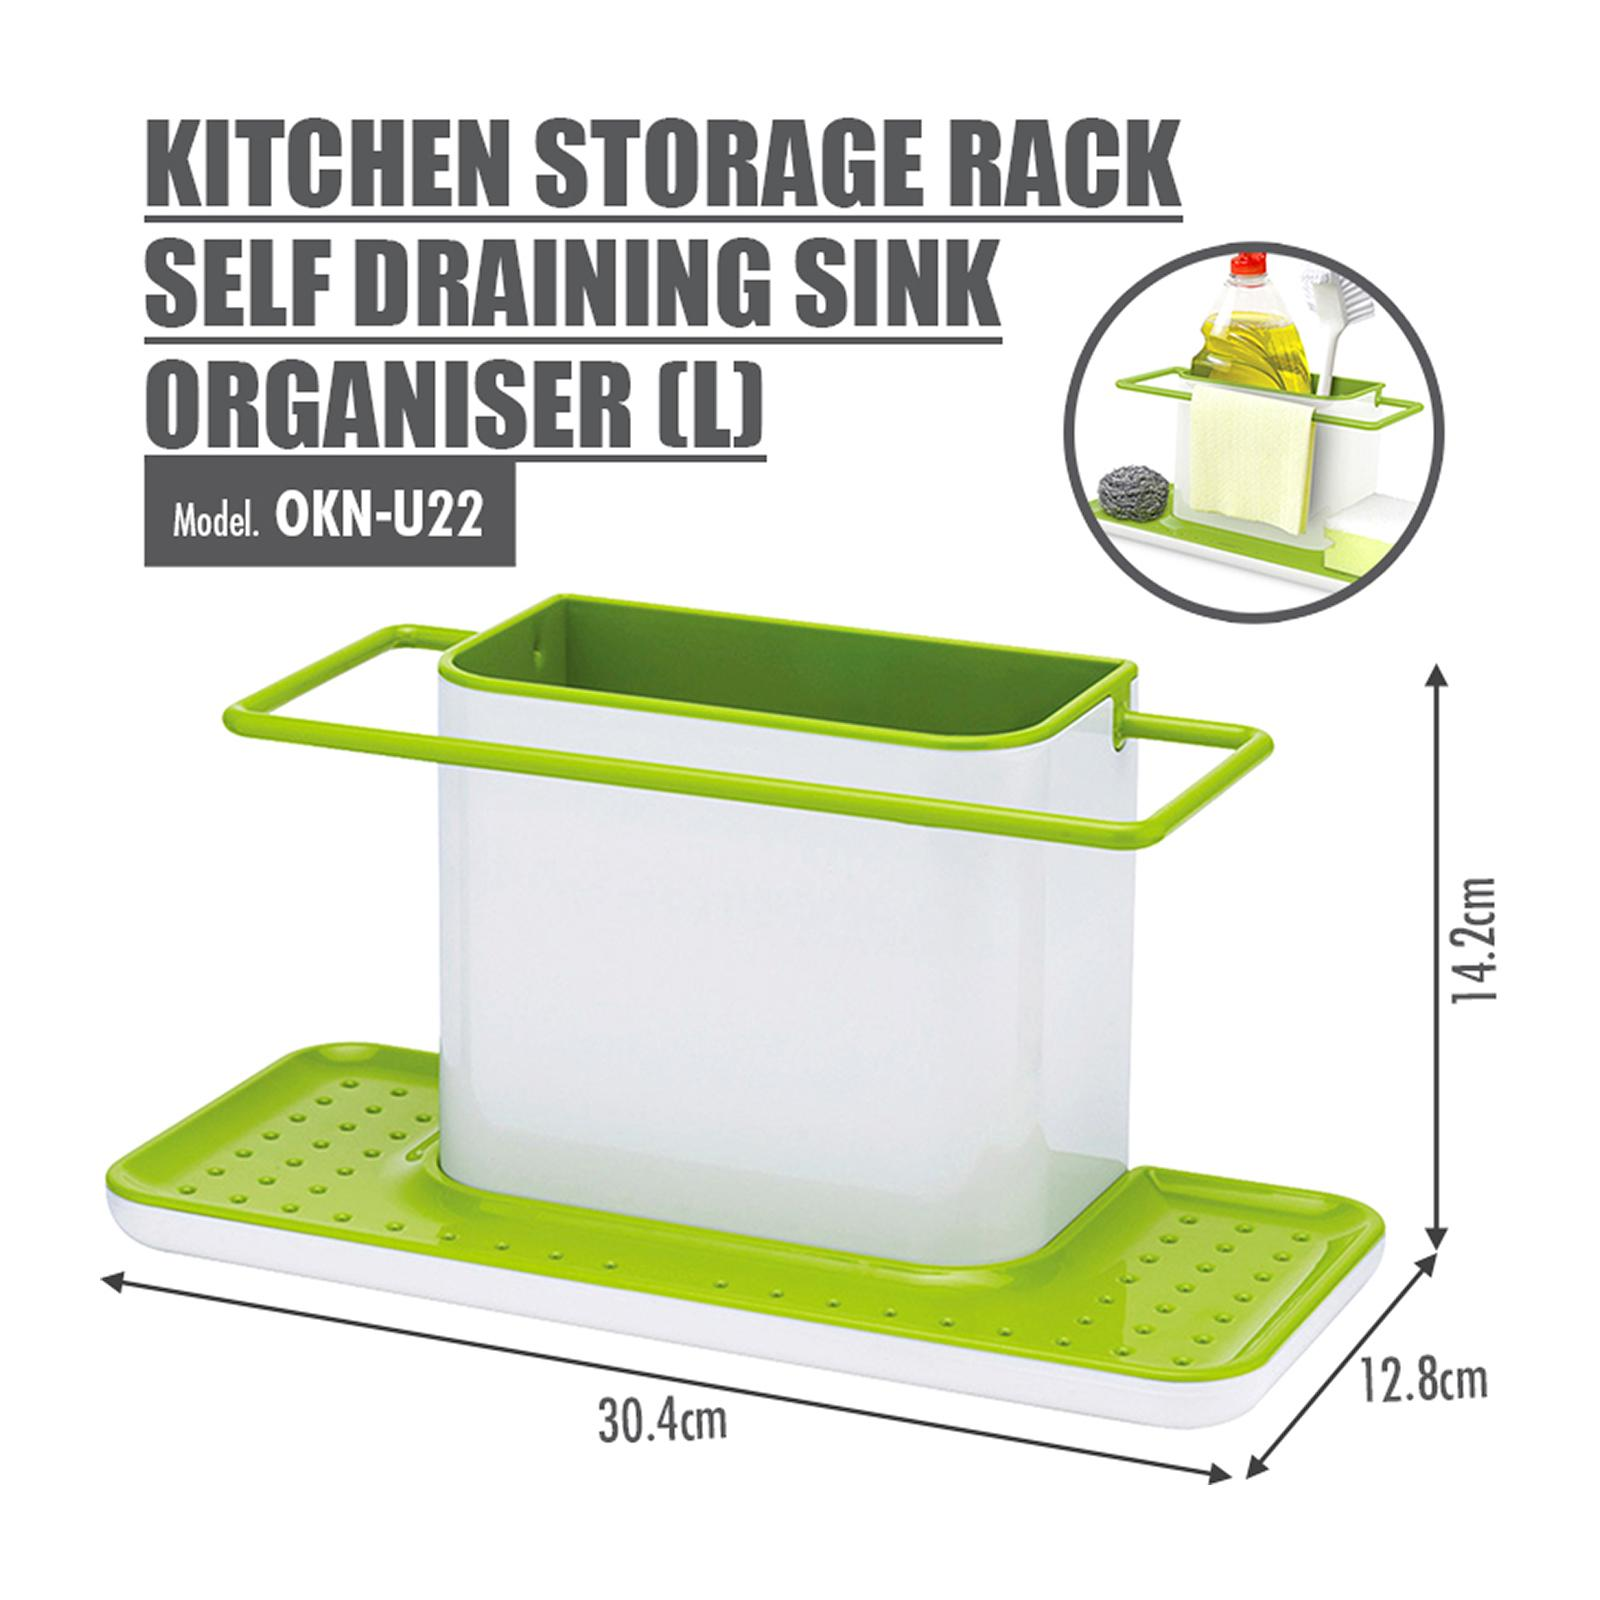 HOUZE Kitchen Storage Rack Self Draining Sink Organiser (Large)